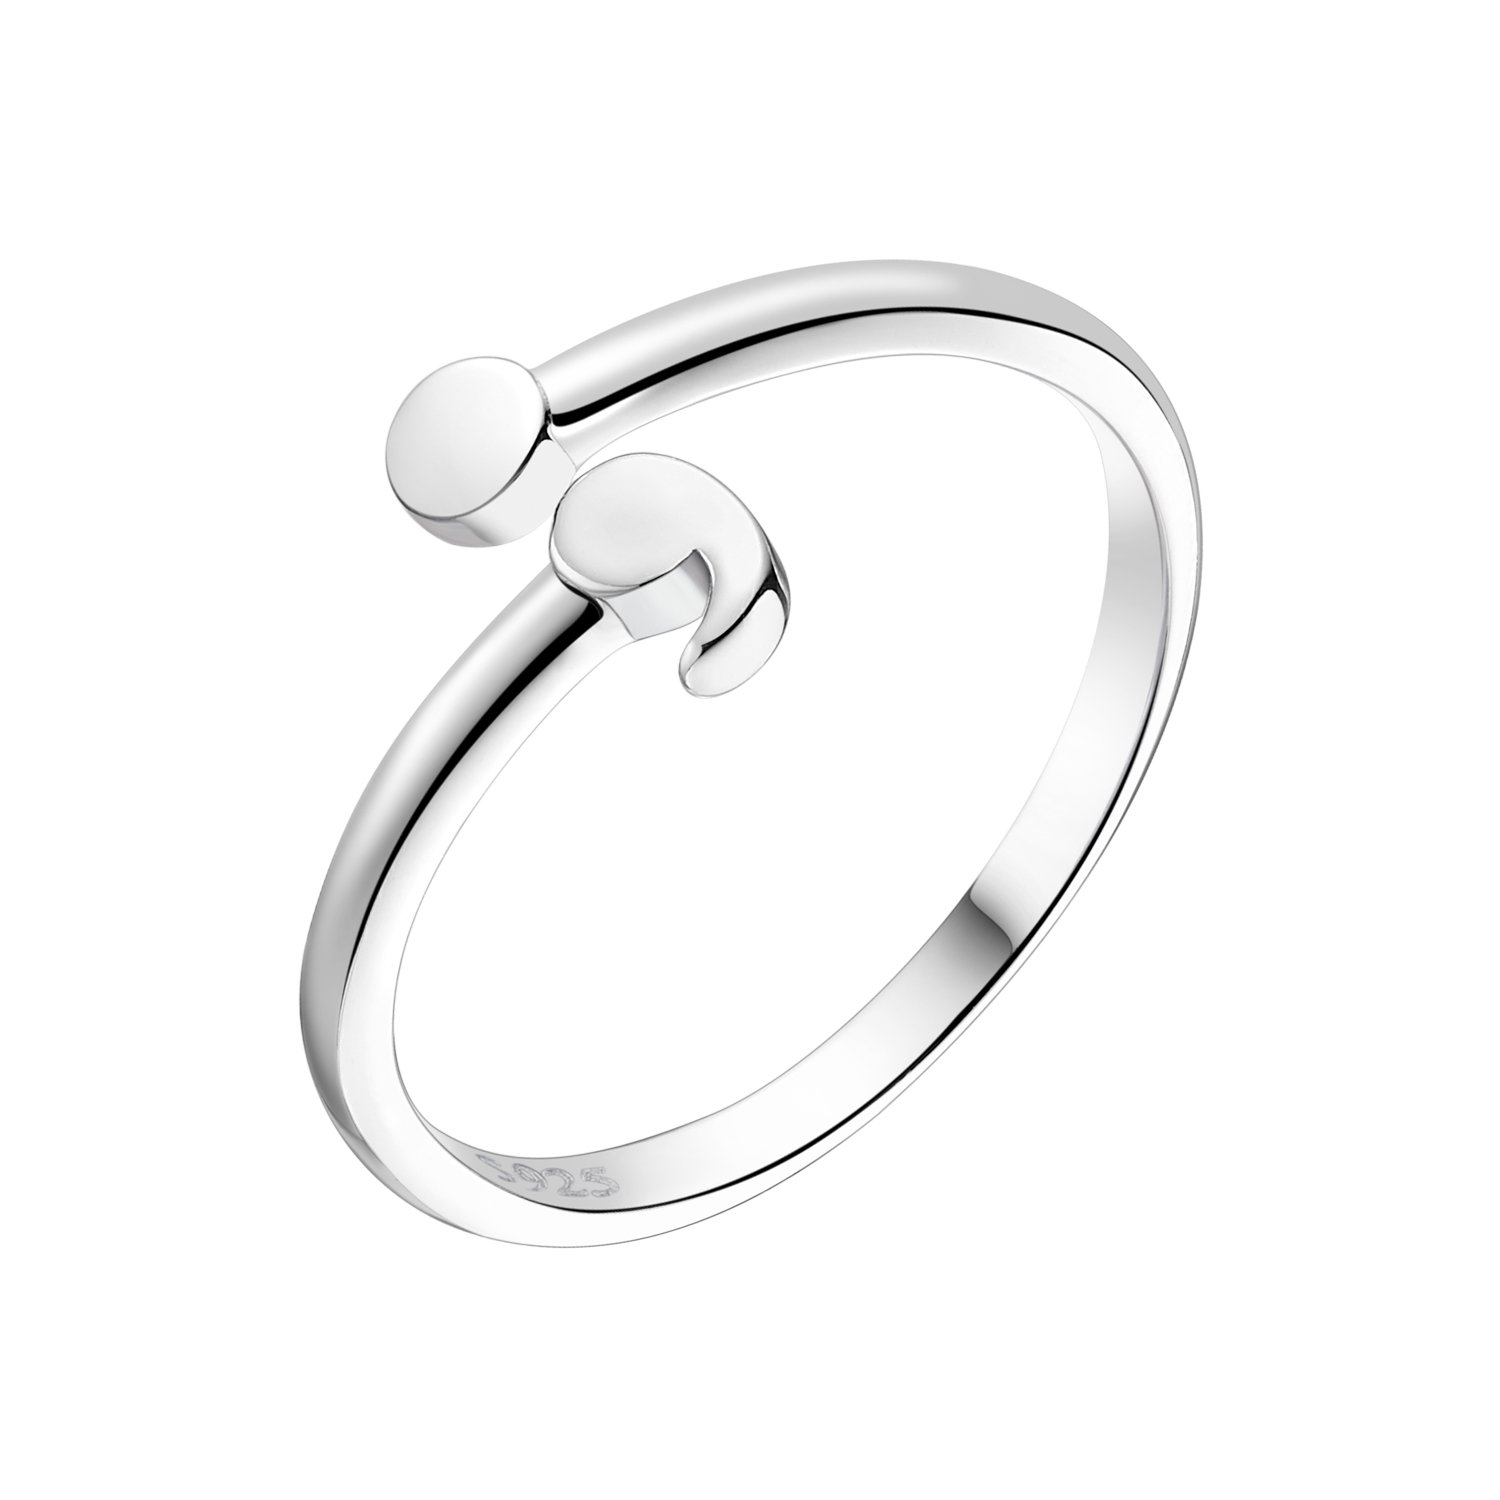 Sattaj|LIFE Semicolon Ring, 925 Sterling Silver|Wear This to Raise and Support Awareness for Suicide and Depression|Keep Breathing, Life is Worth Living!